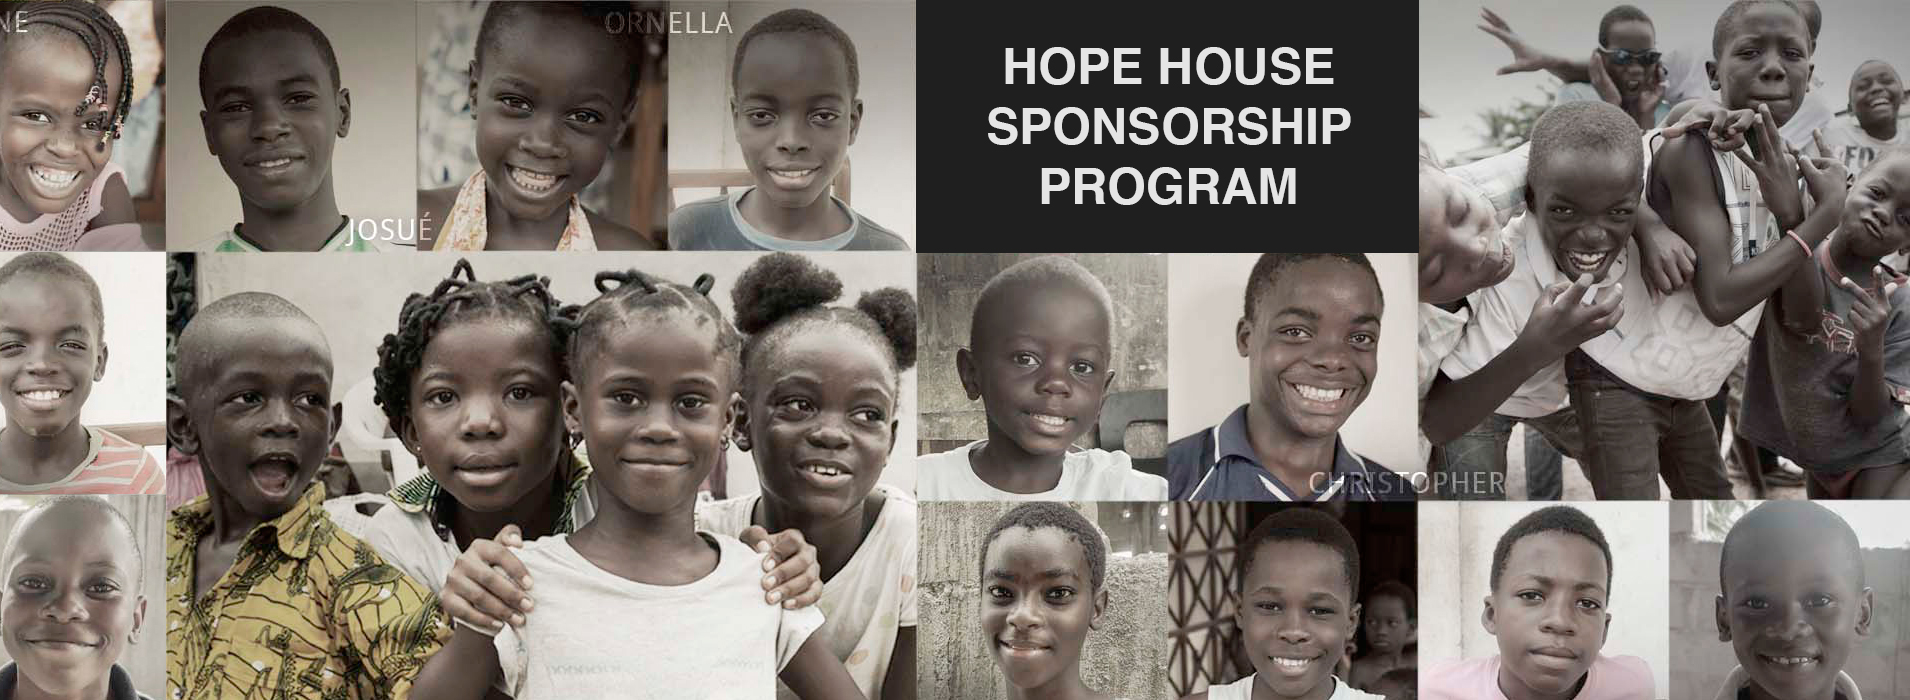 hopeHouse_home